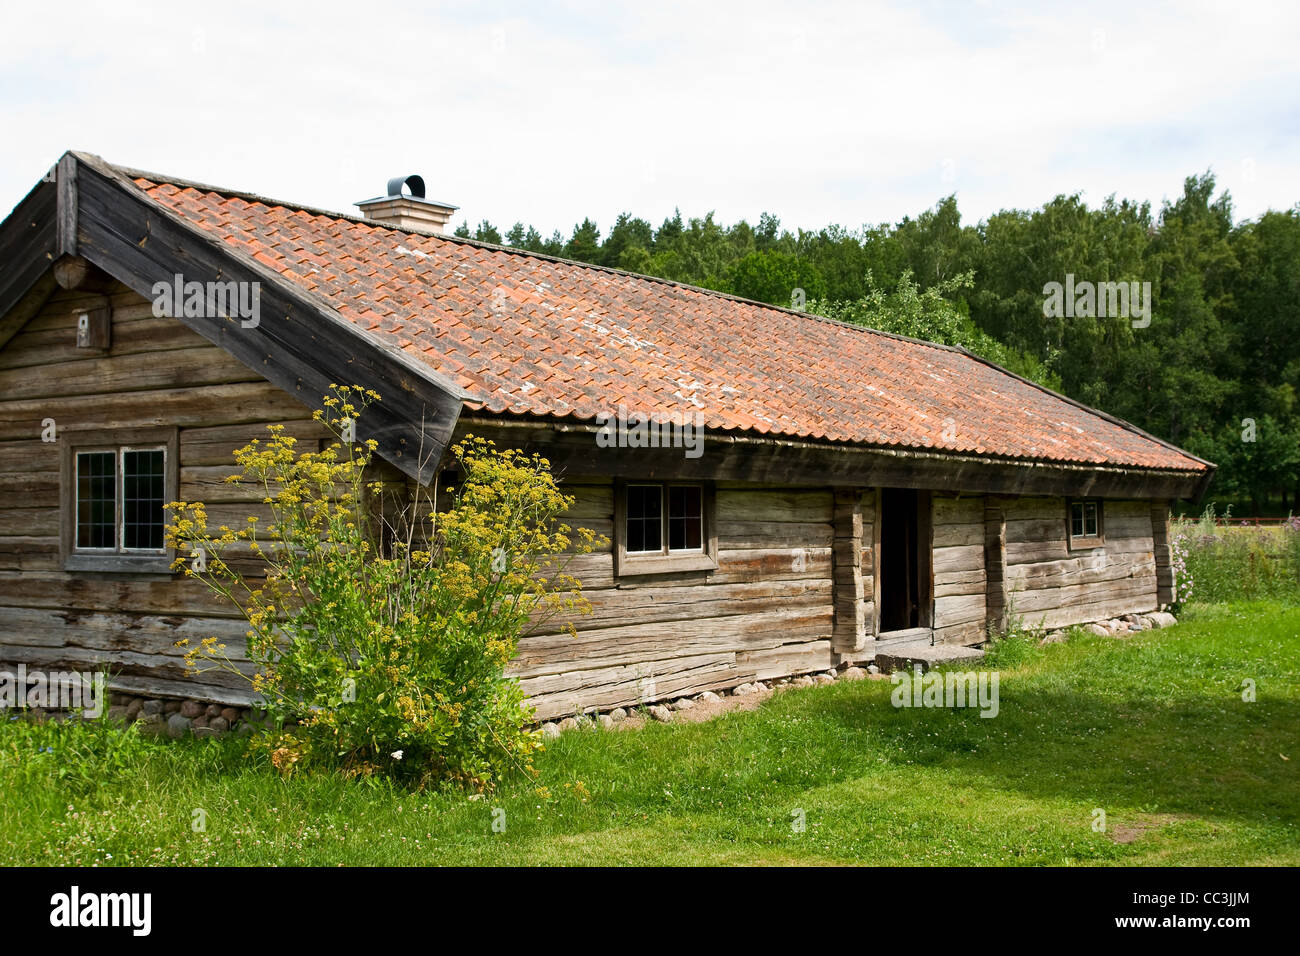 Wooden cabin in northern Sweden - Stock Image